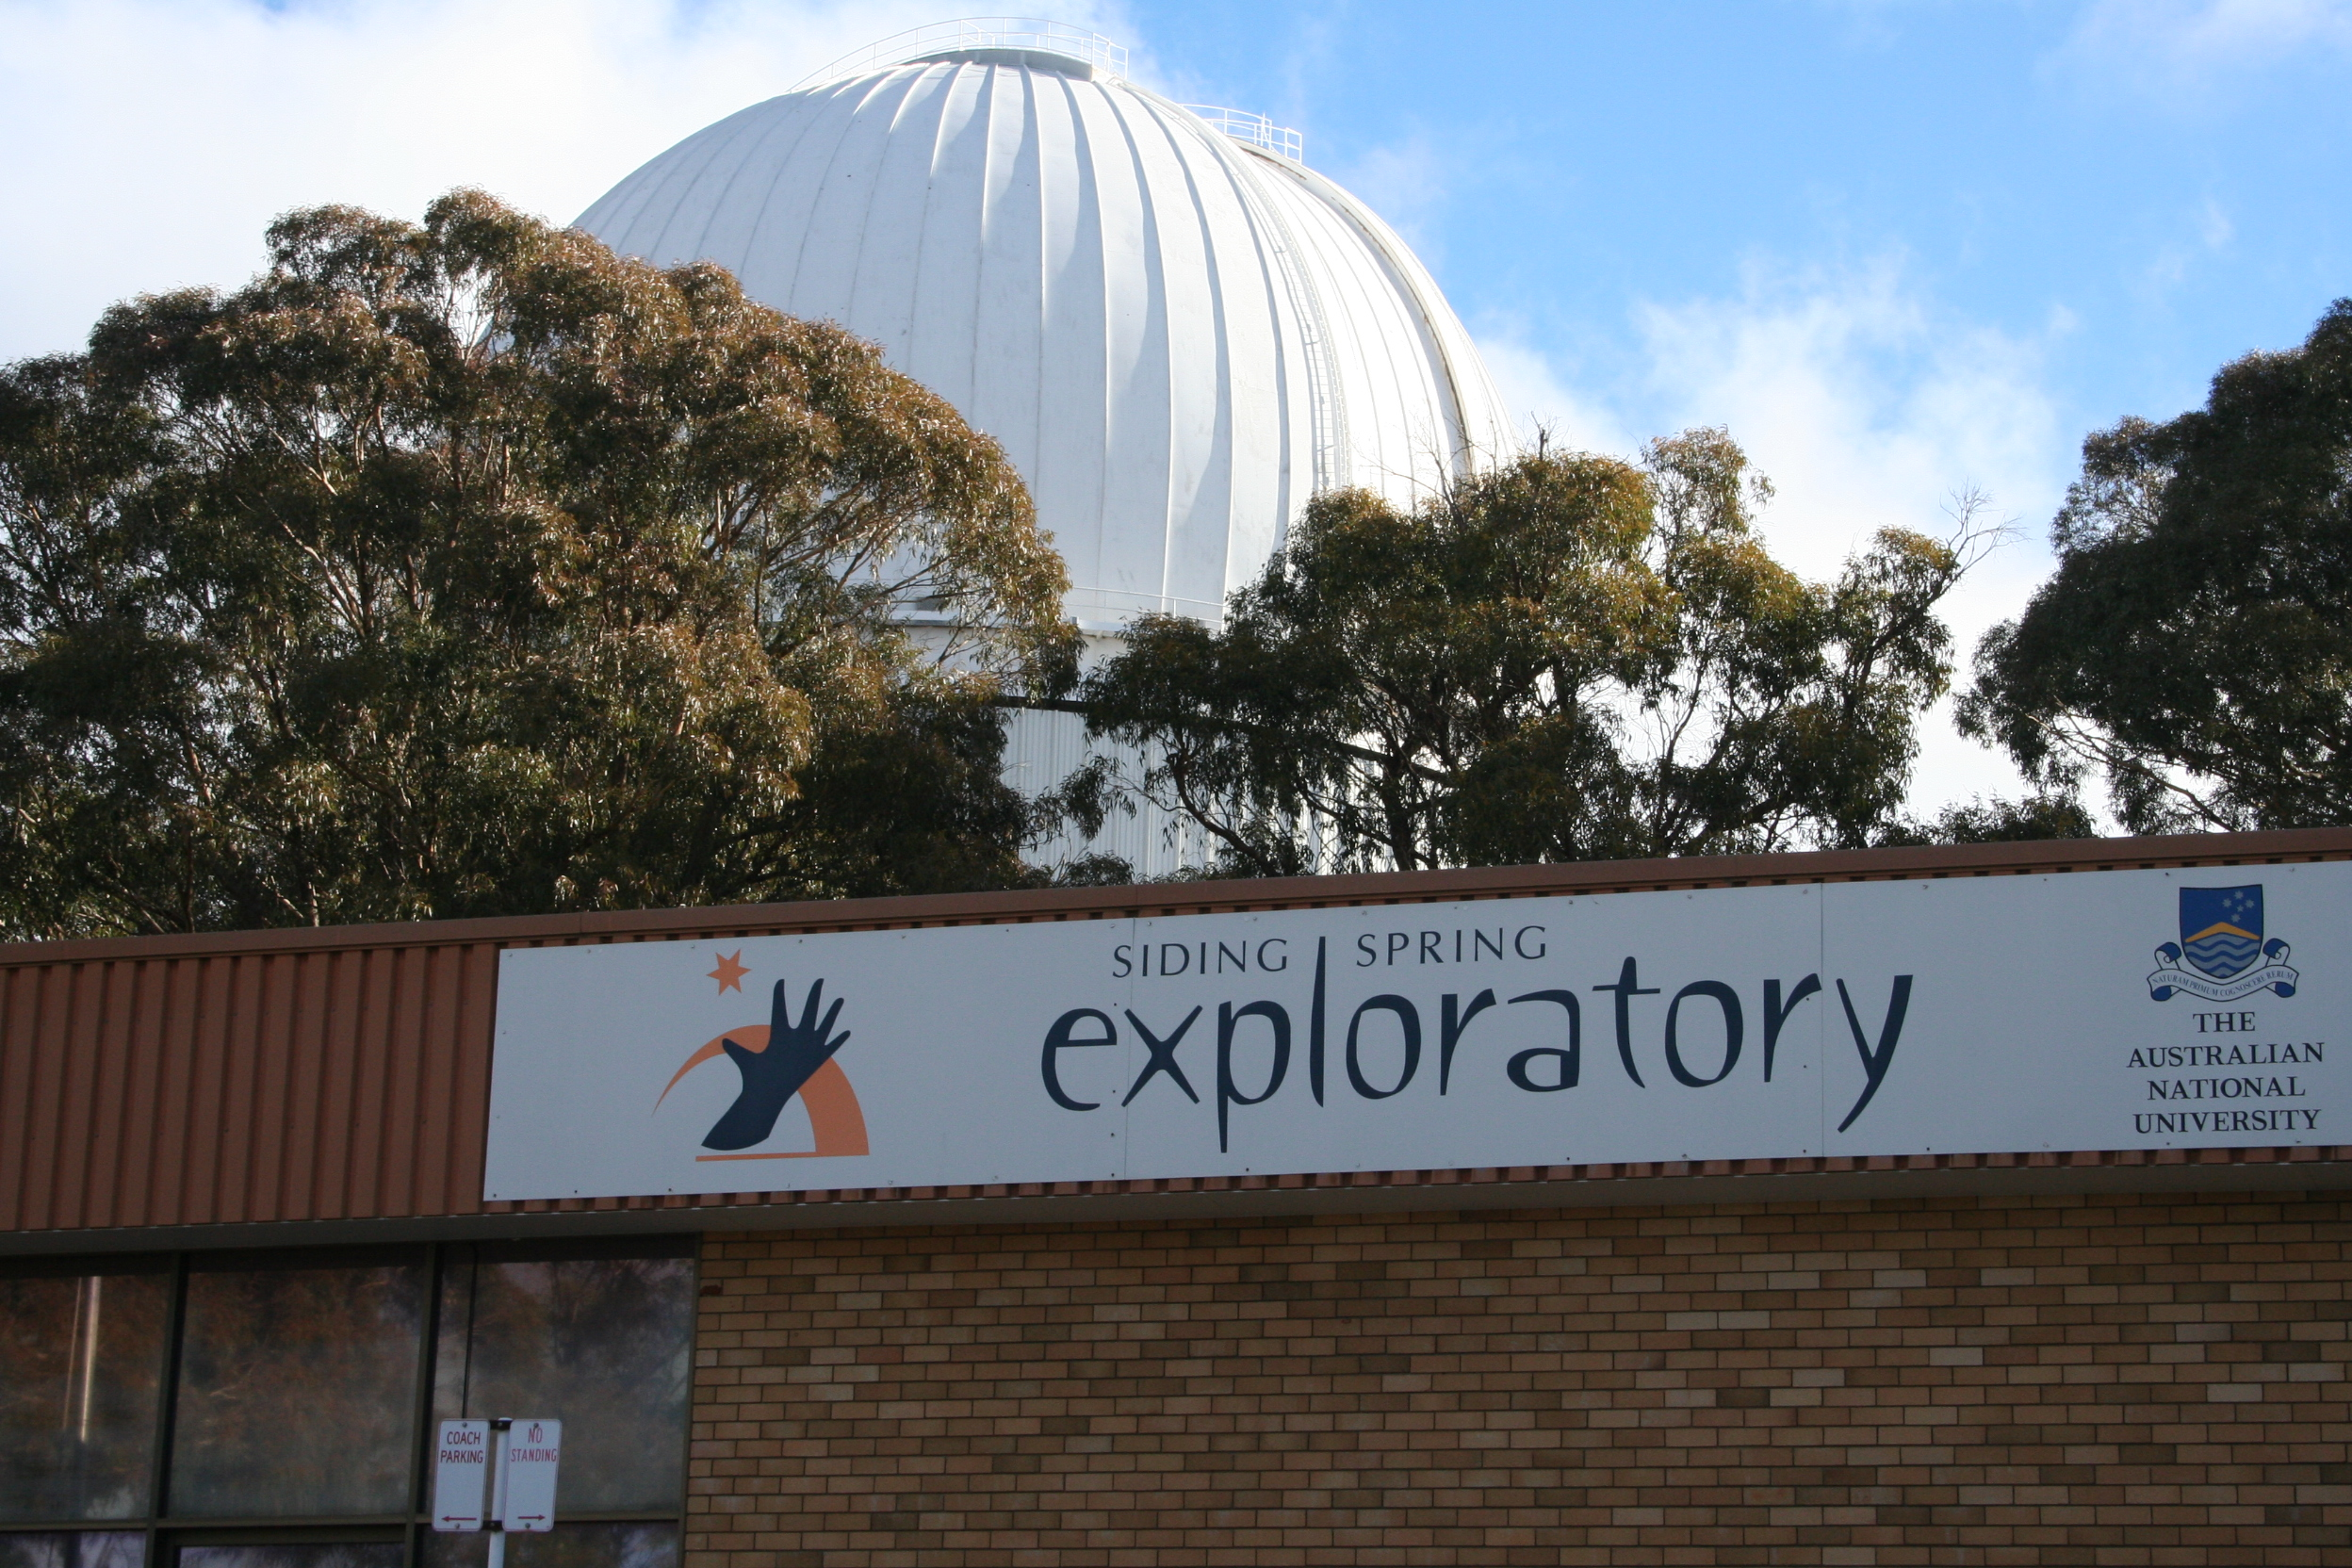 Siding Springs Observatory Coonabarabran 1 The